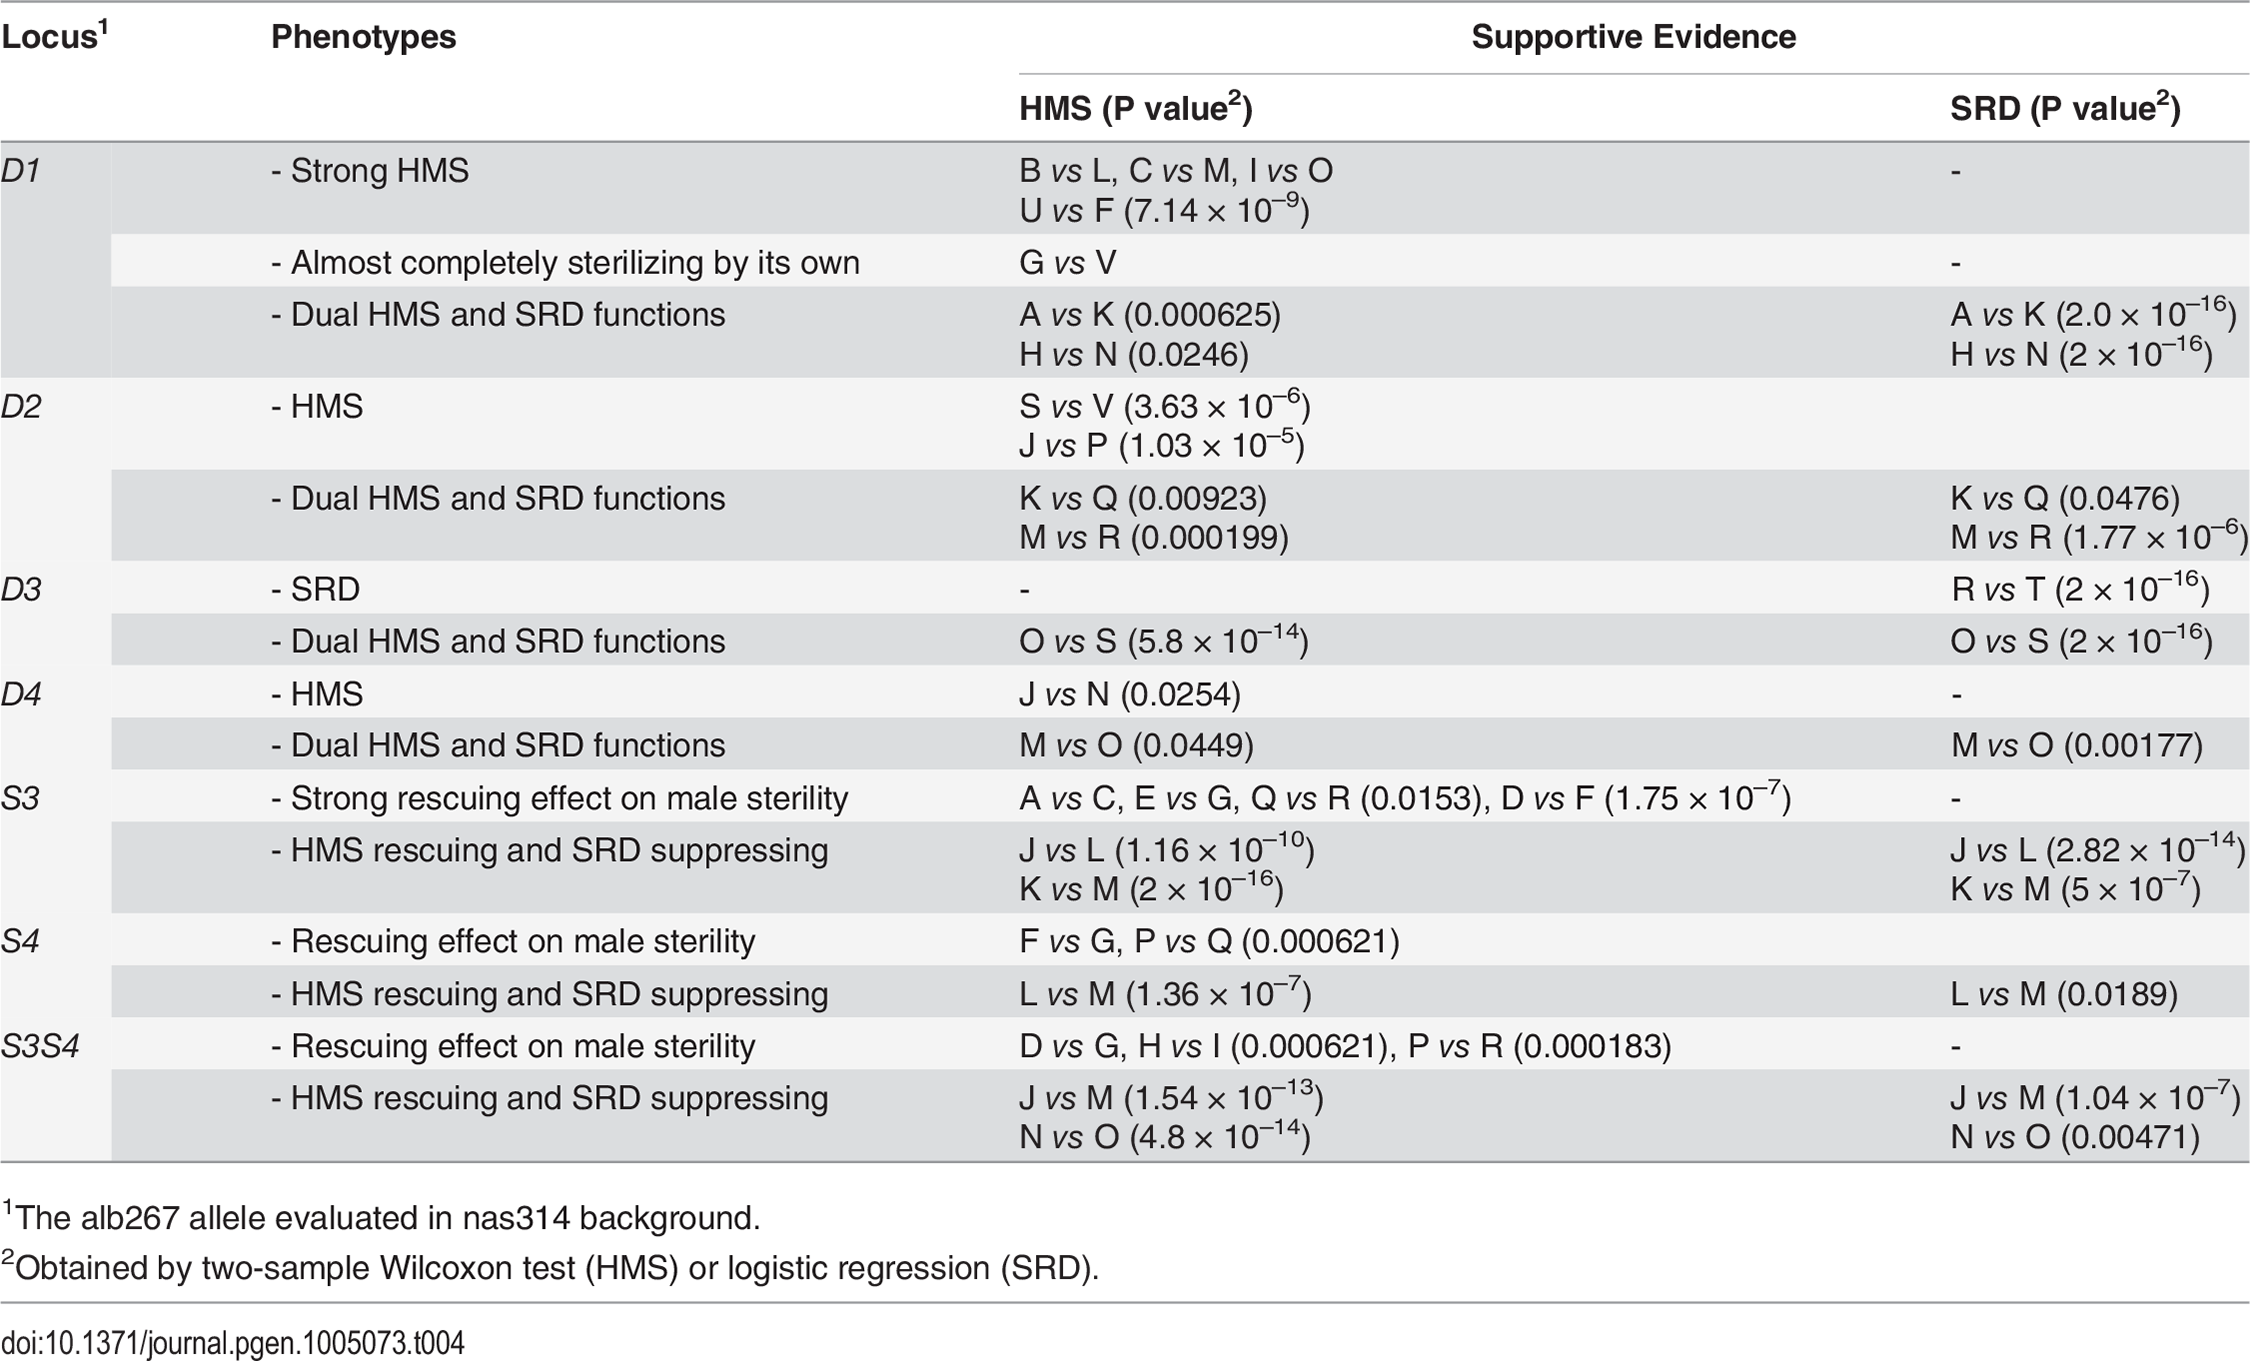 Summary of introgression studies: Evidence for the HMS and SRD functions of each locus.